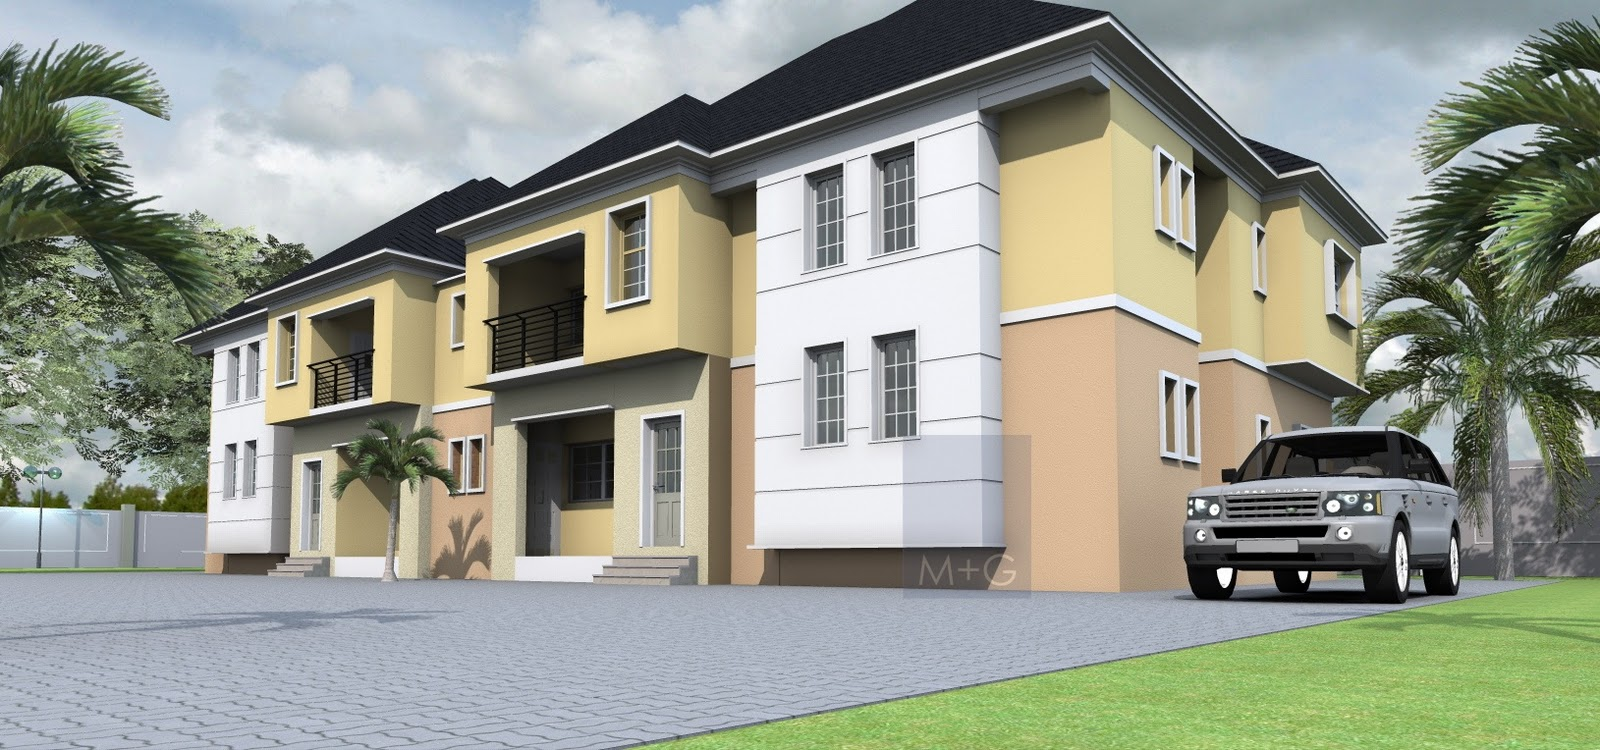 3 Bedroom Flat Plans In Nigeria